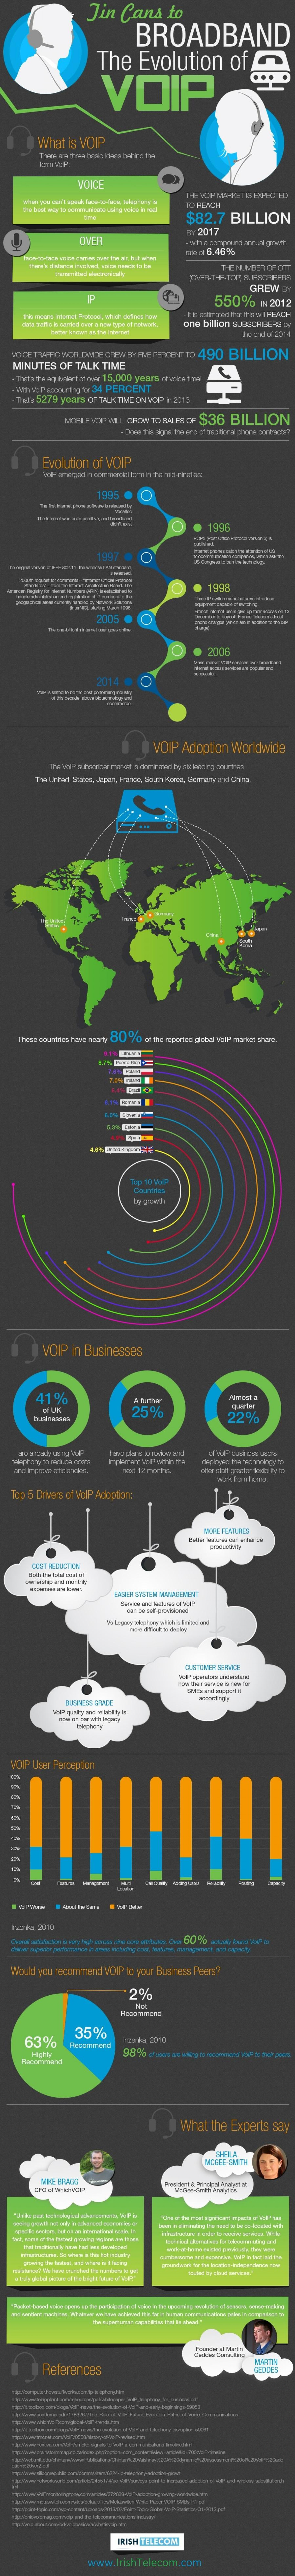 The Evolution of VoIP Infographic